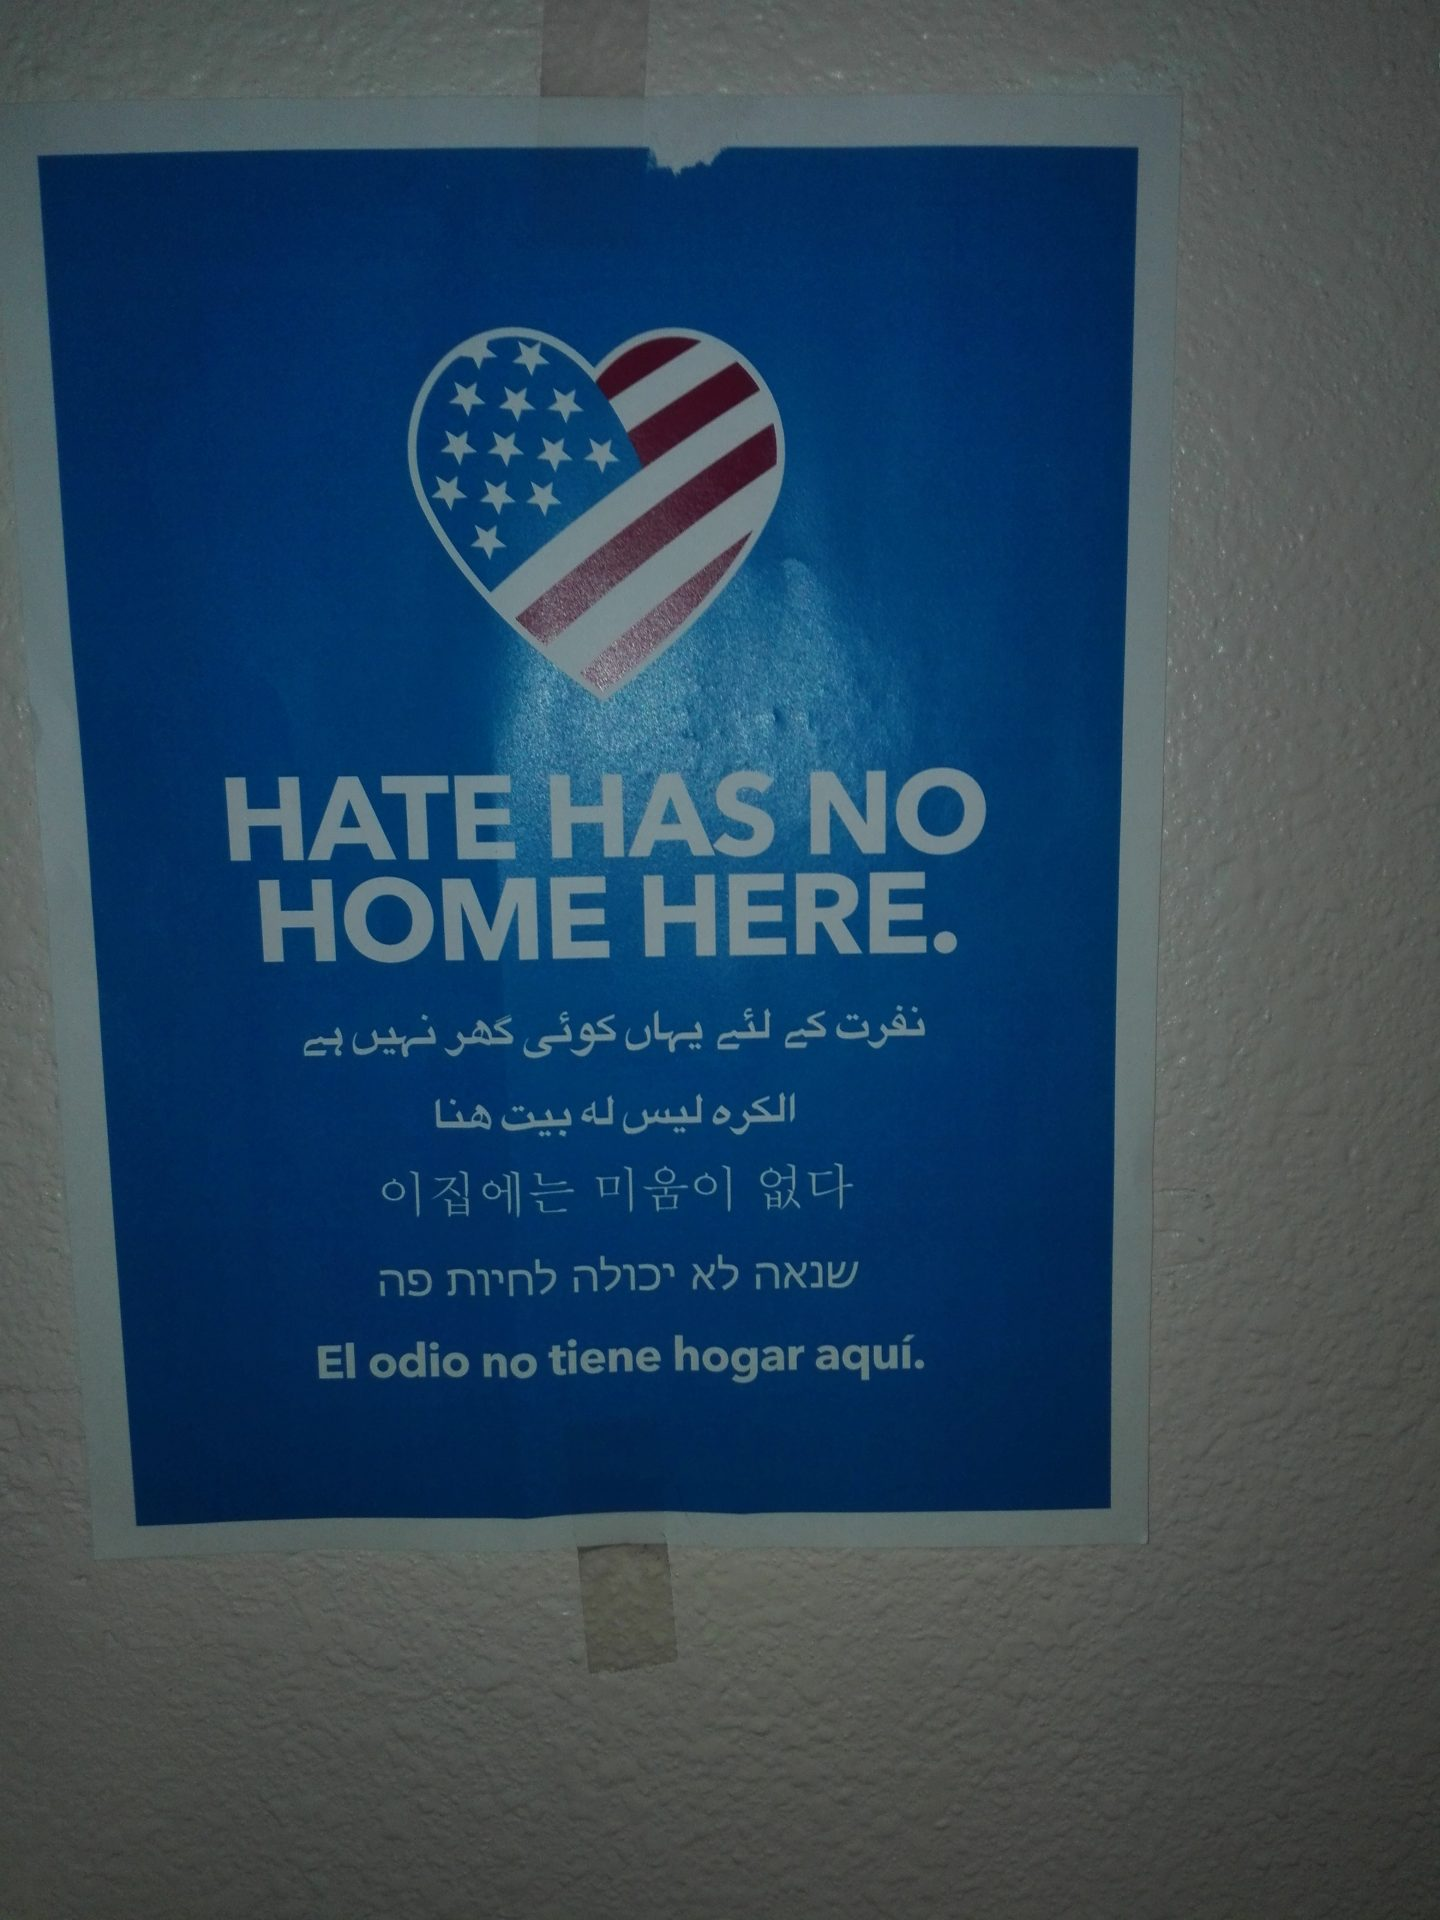 """U.S flag inside a heart shaped design and wording below saying """"Hate has no home here""""."""